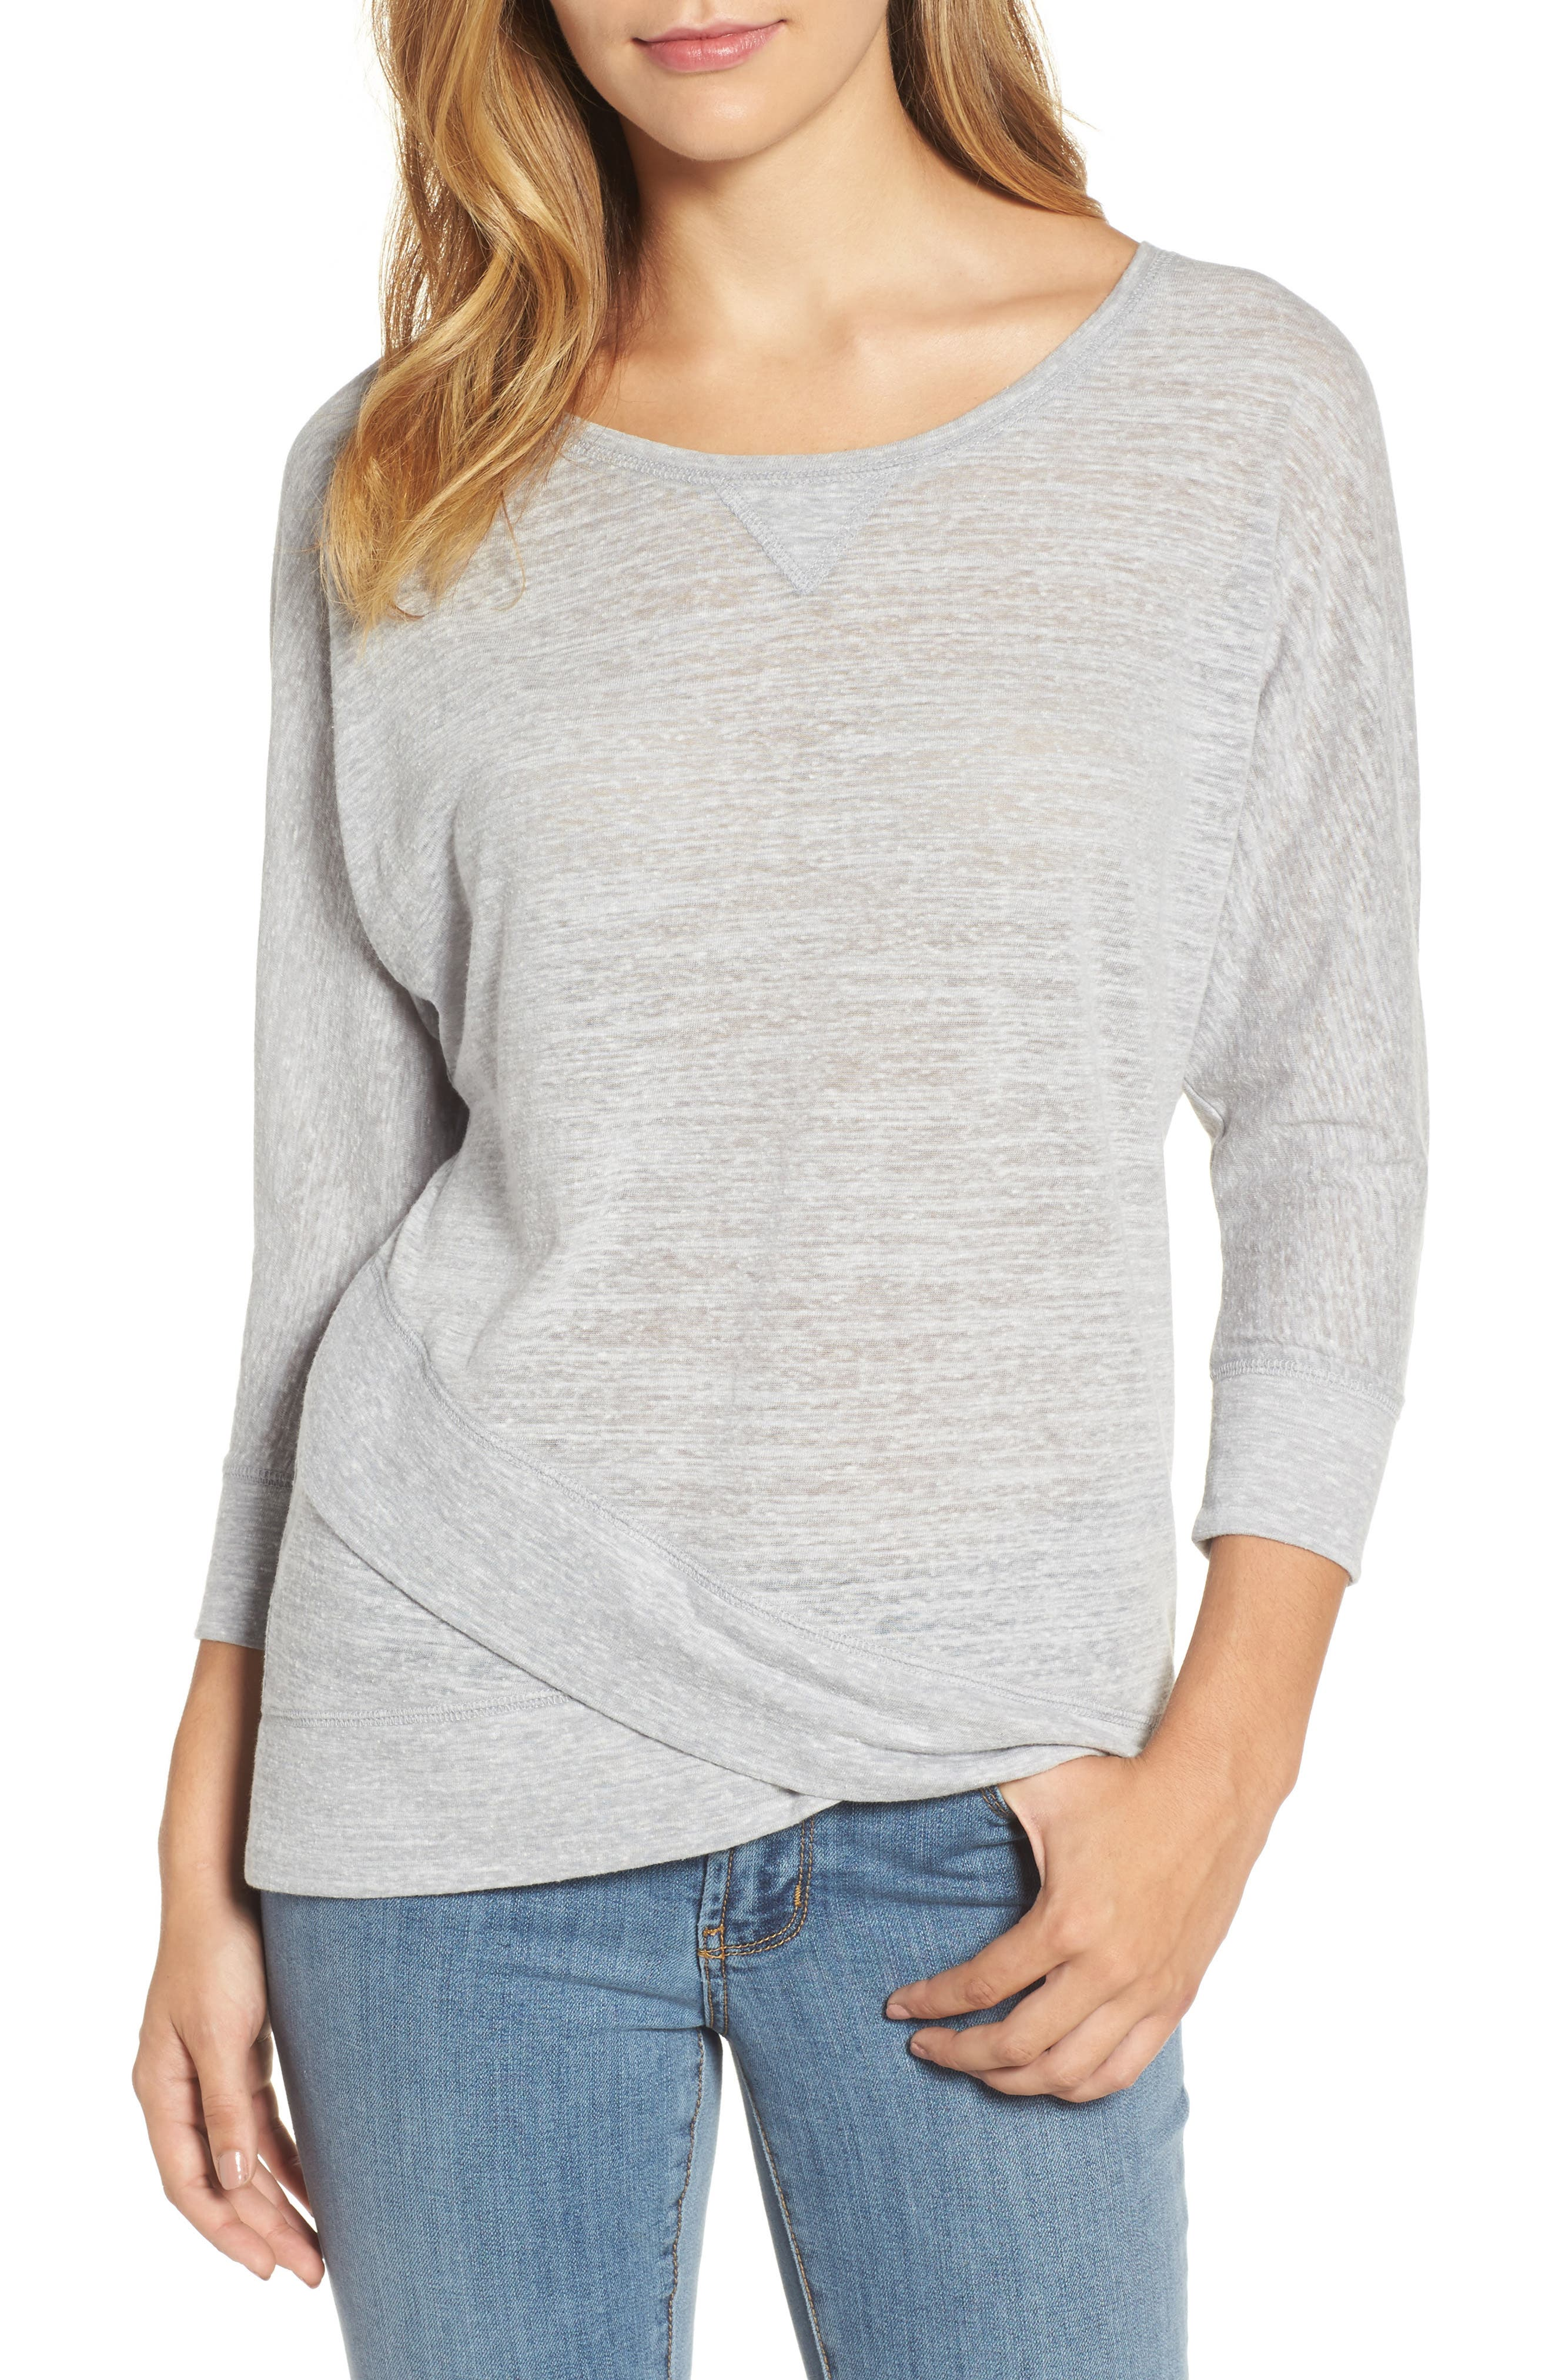 Alternate Image 1 Selected - Caslon® Crossover Front Tee (Regular & Petite)